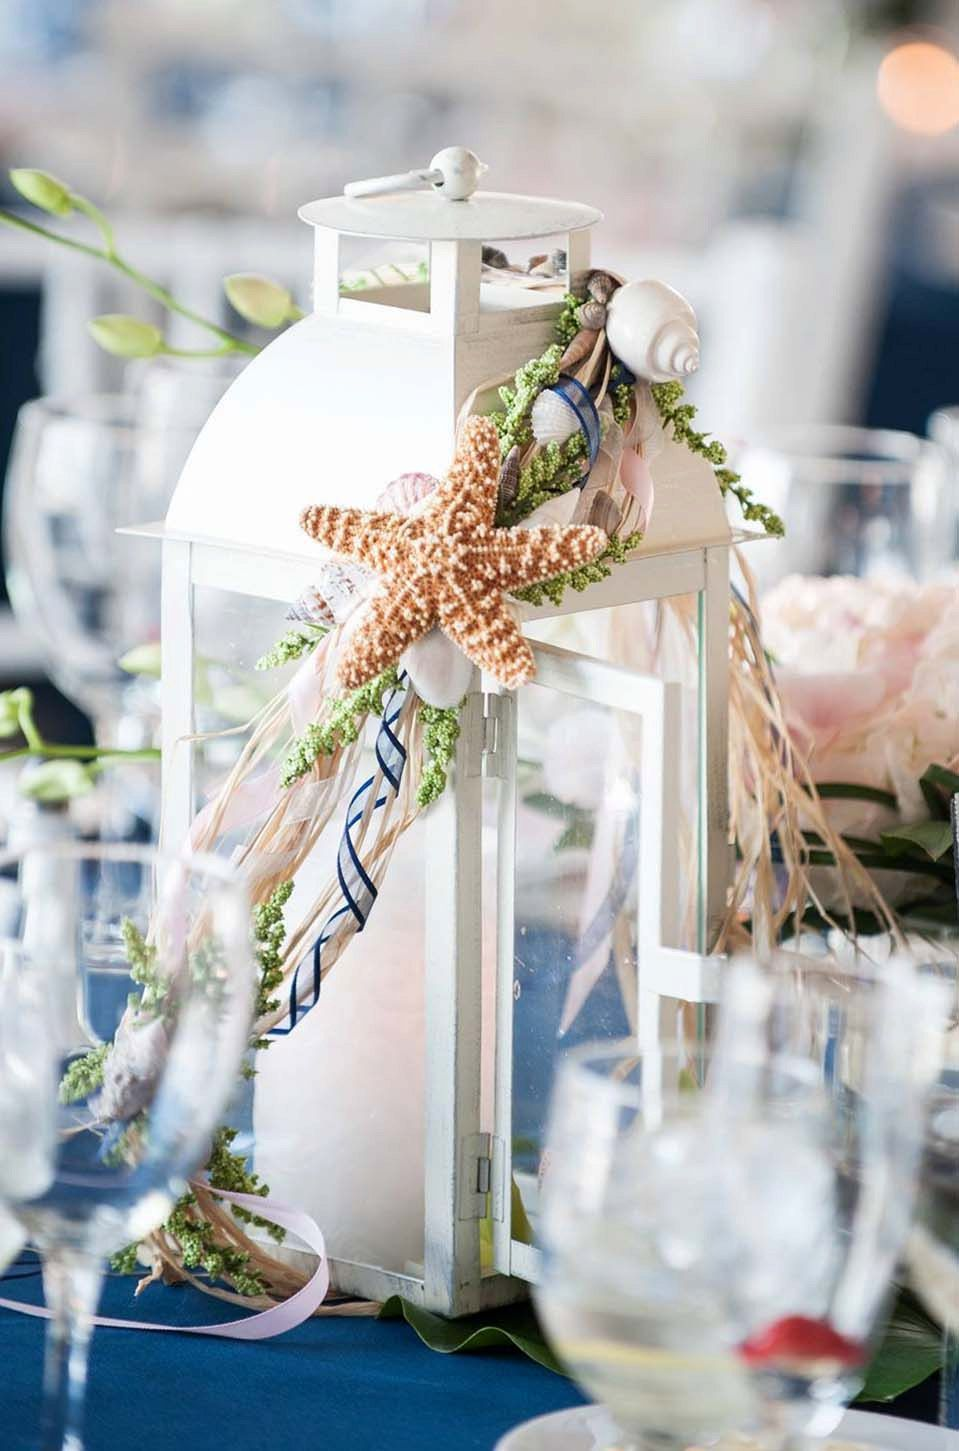 Lantern Centerpieces Etsy : Distressed beach themed wedding lanterns centerpieces by